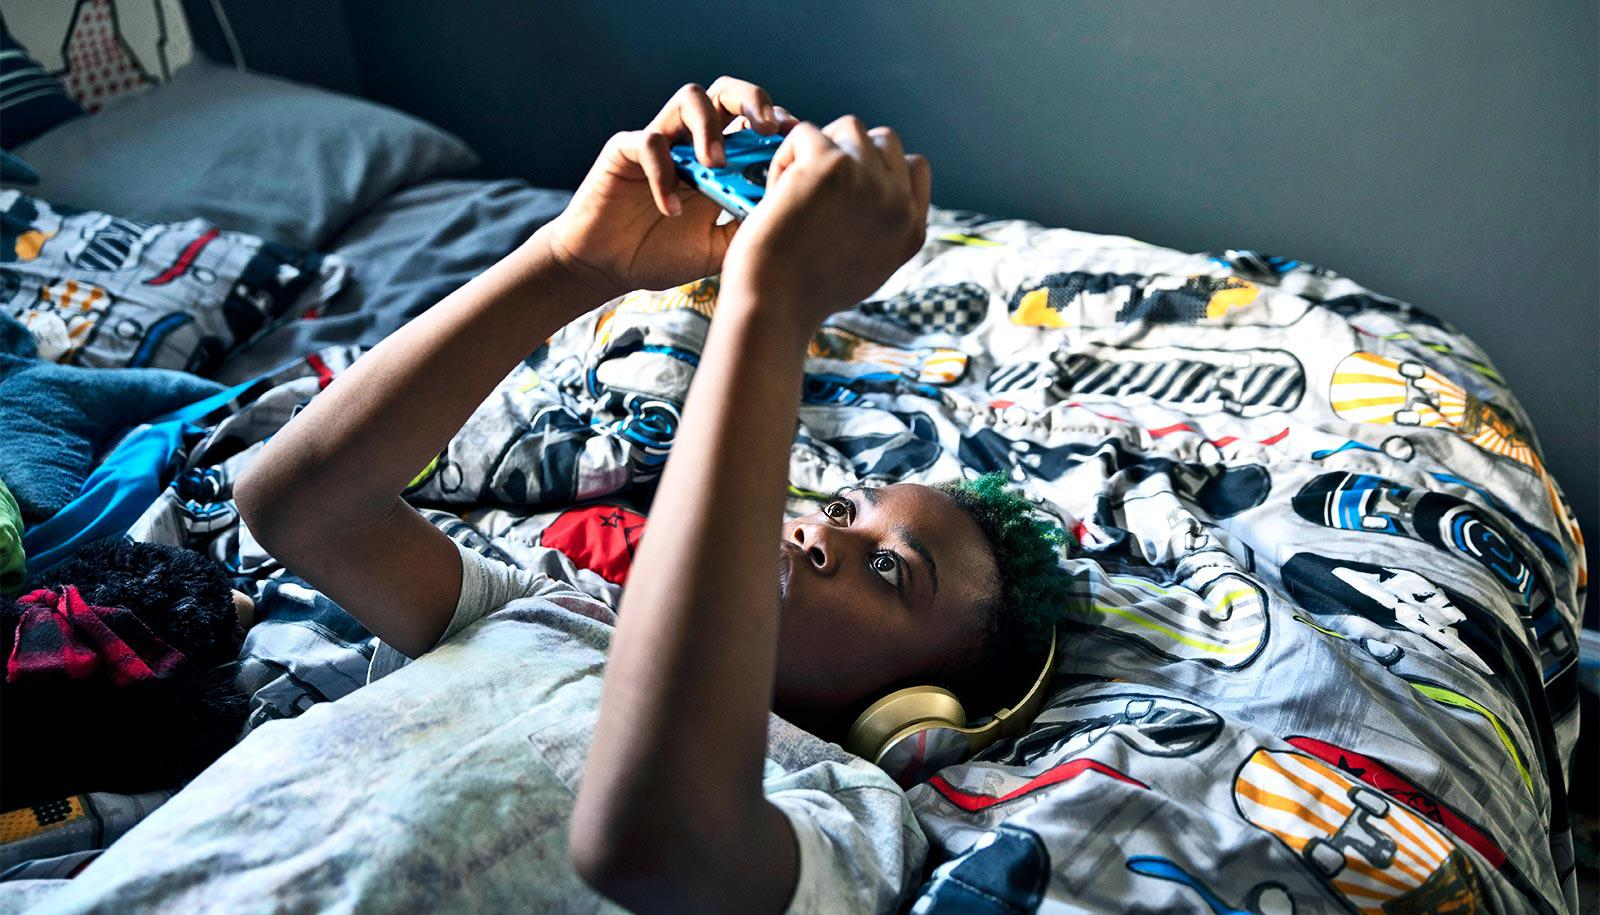 A young teen boy lies on his bed (covered in skateboarding-themed blankets) while playing a game on his phone and wearing headphones